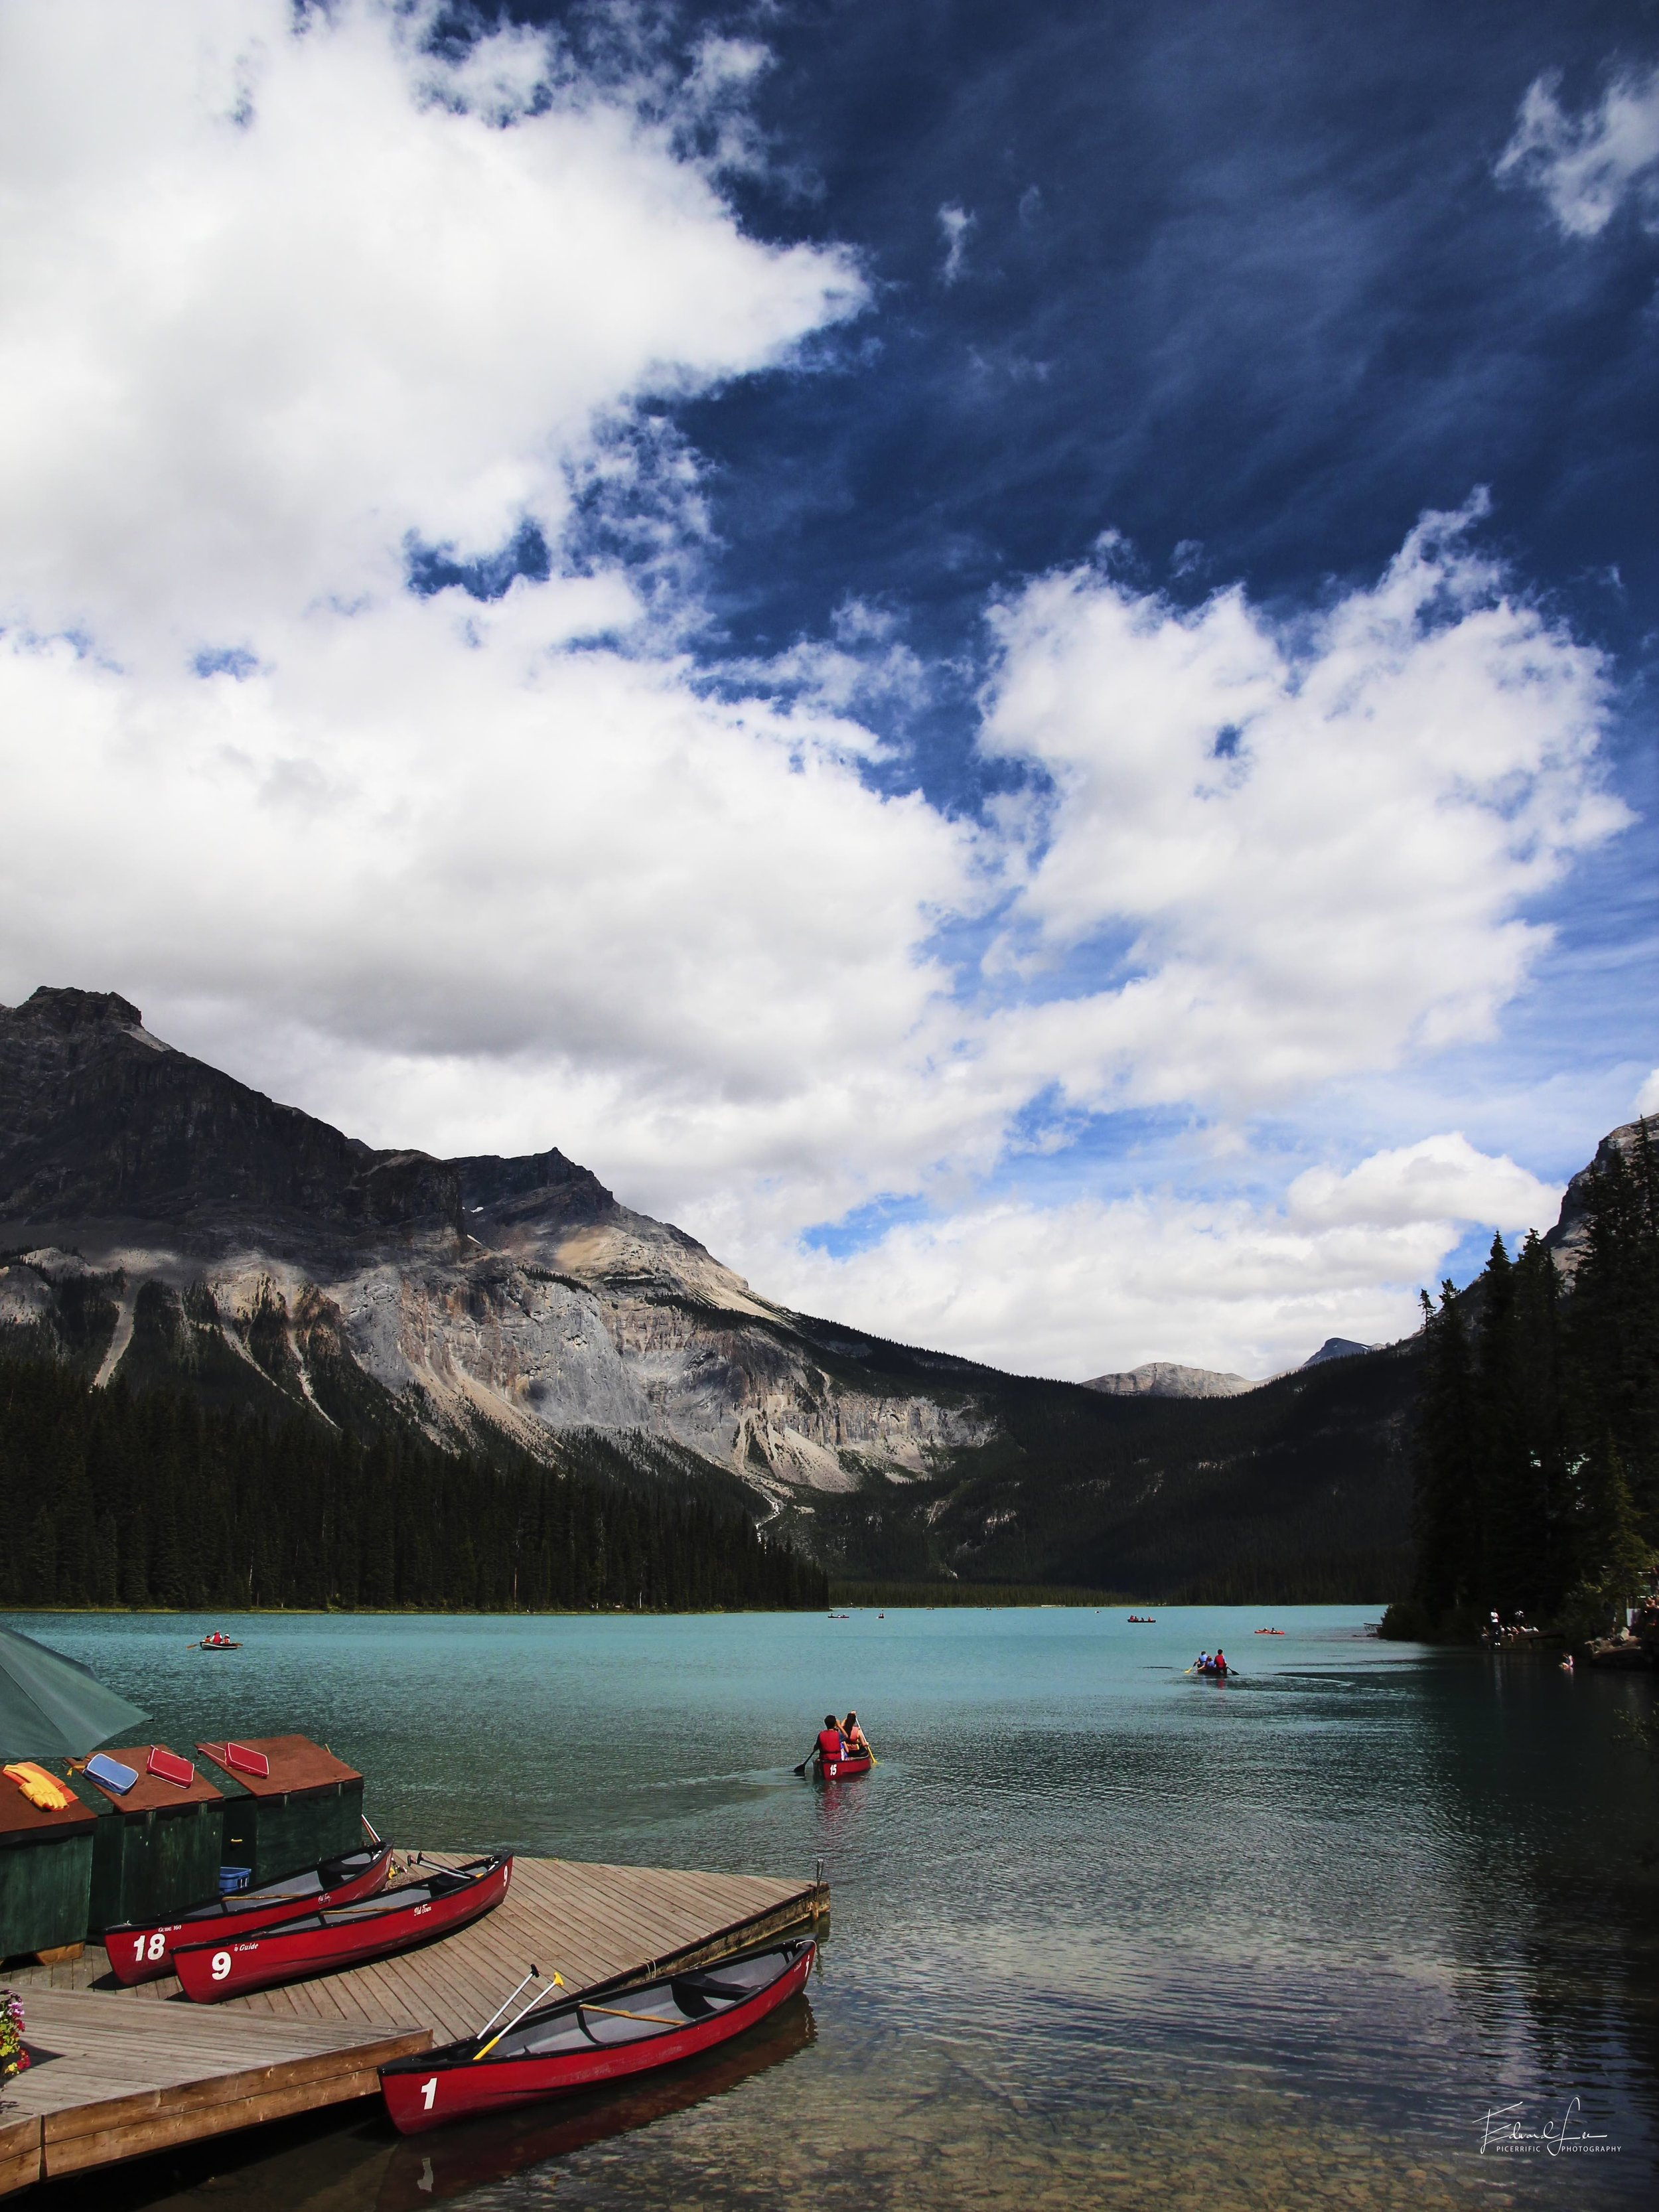 Red boats on Emerald Lake, 2013.